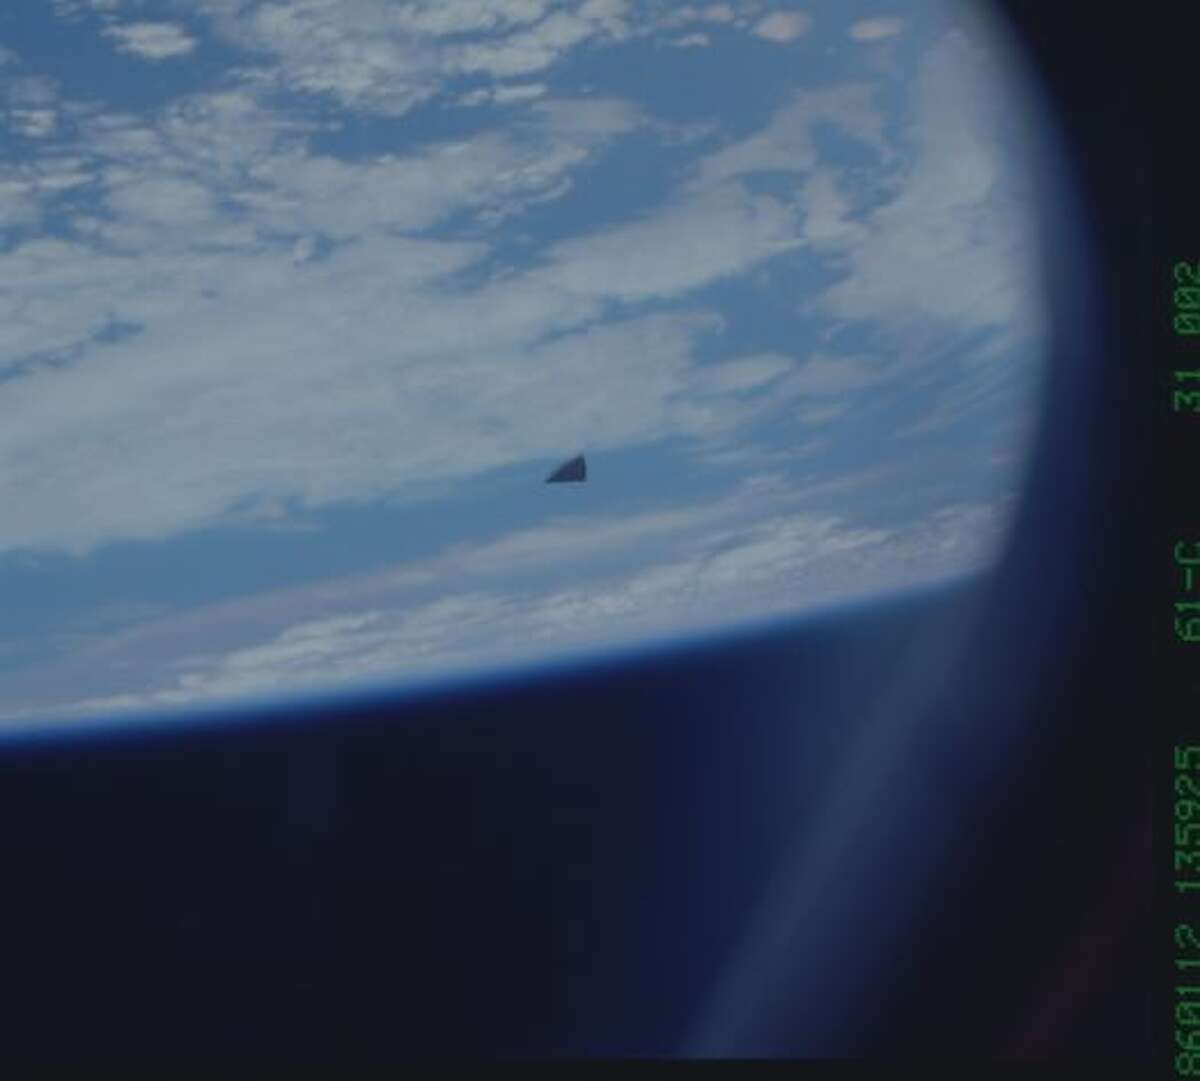 Hi-res snapshot of the mysterious object in space. Check out the full story!